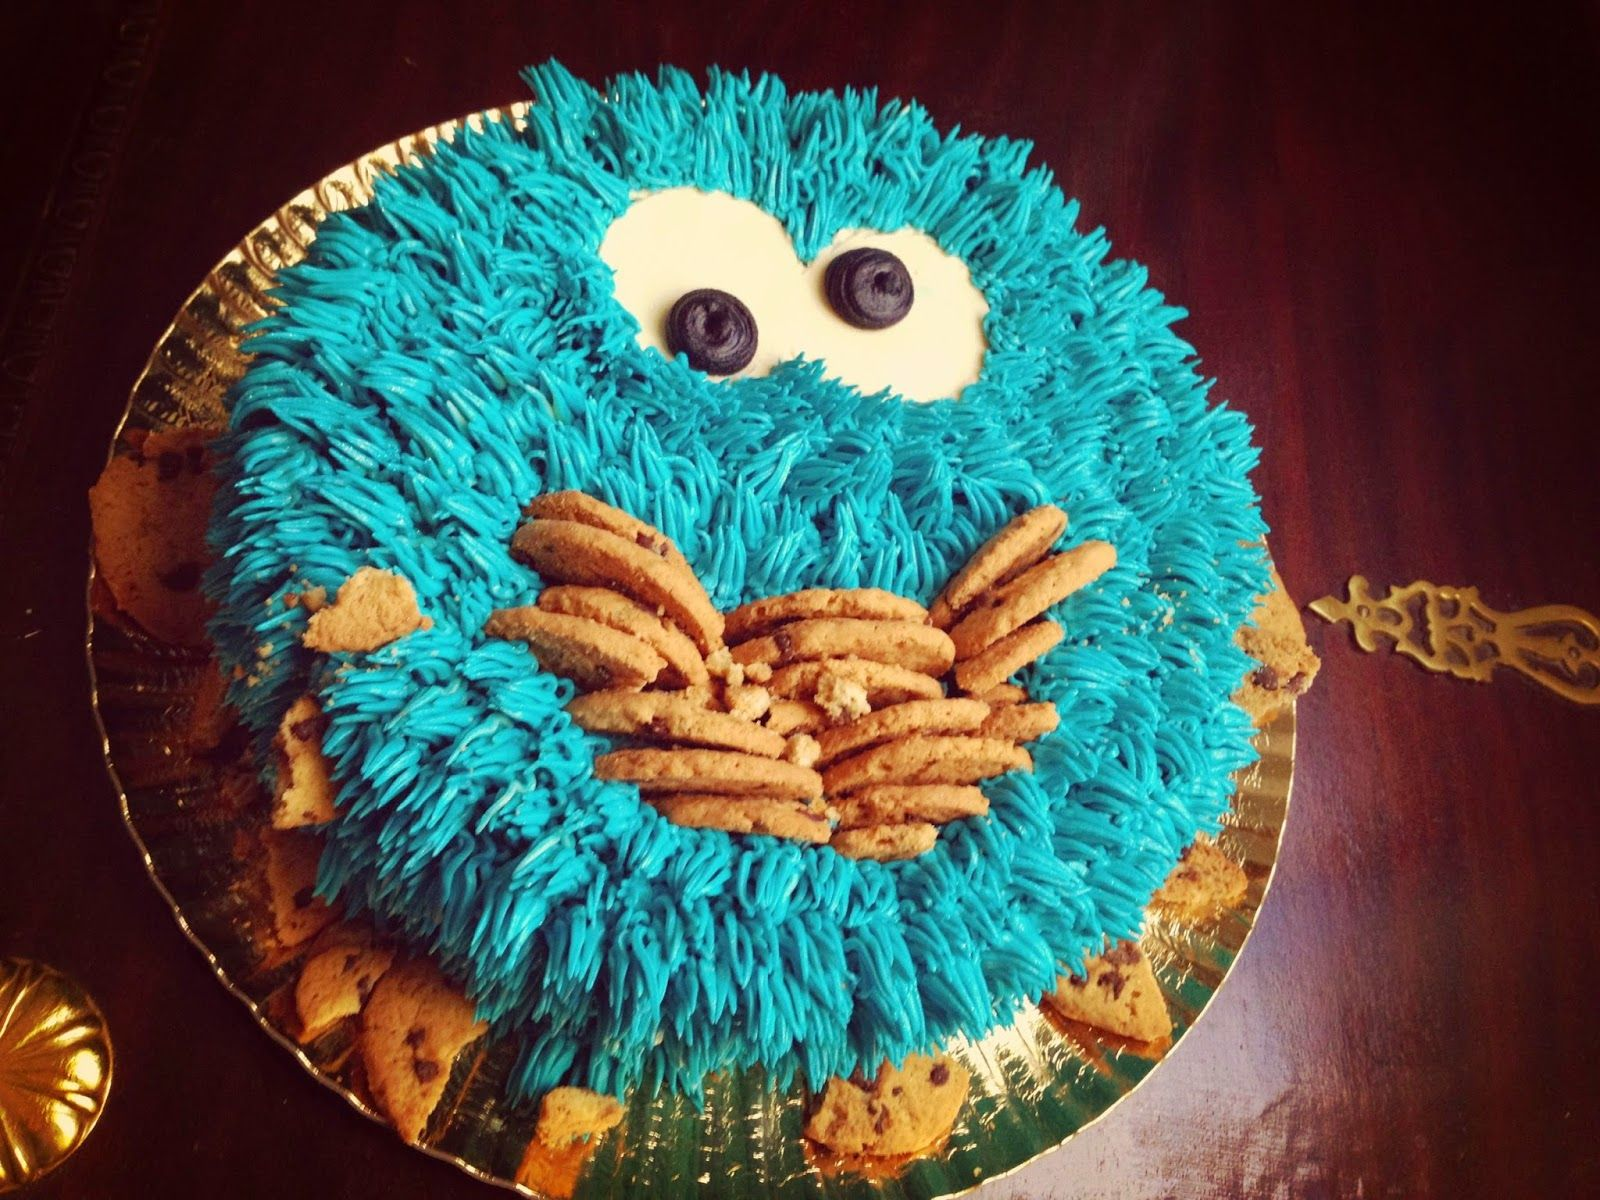 Cookie monster cake :)